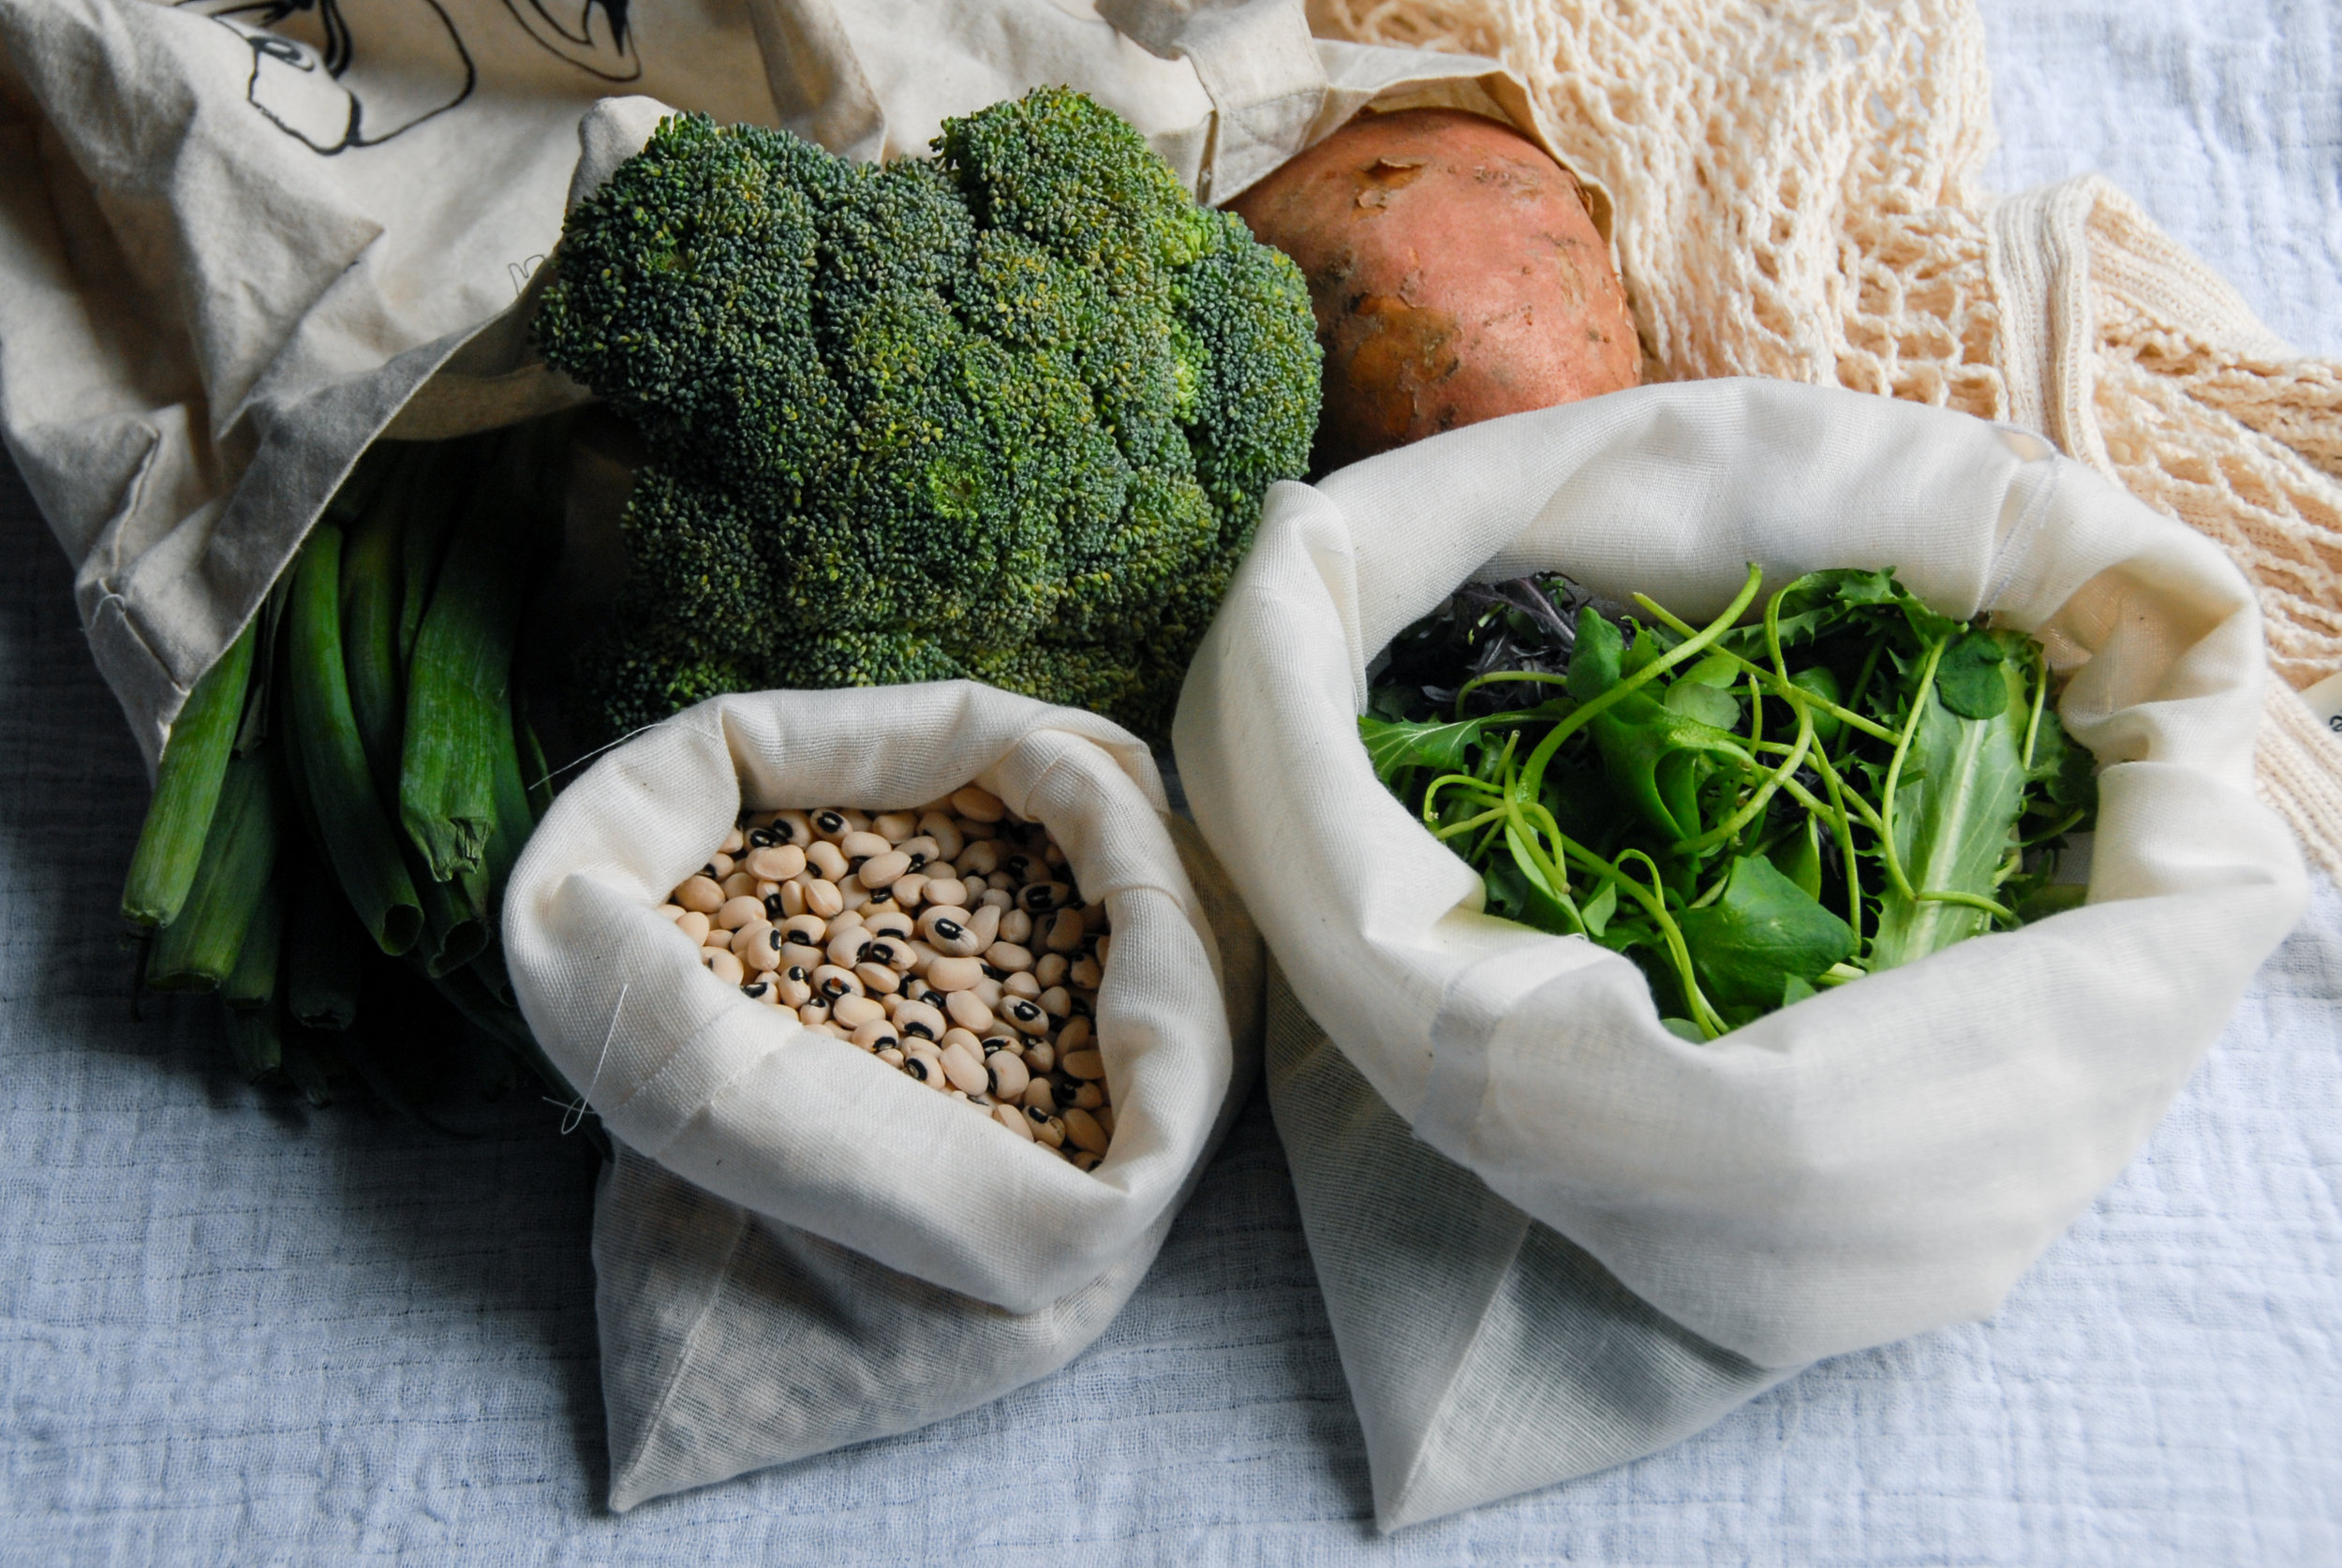 Zero waste grocery bags